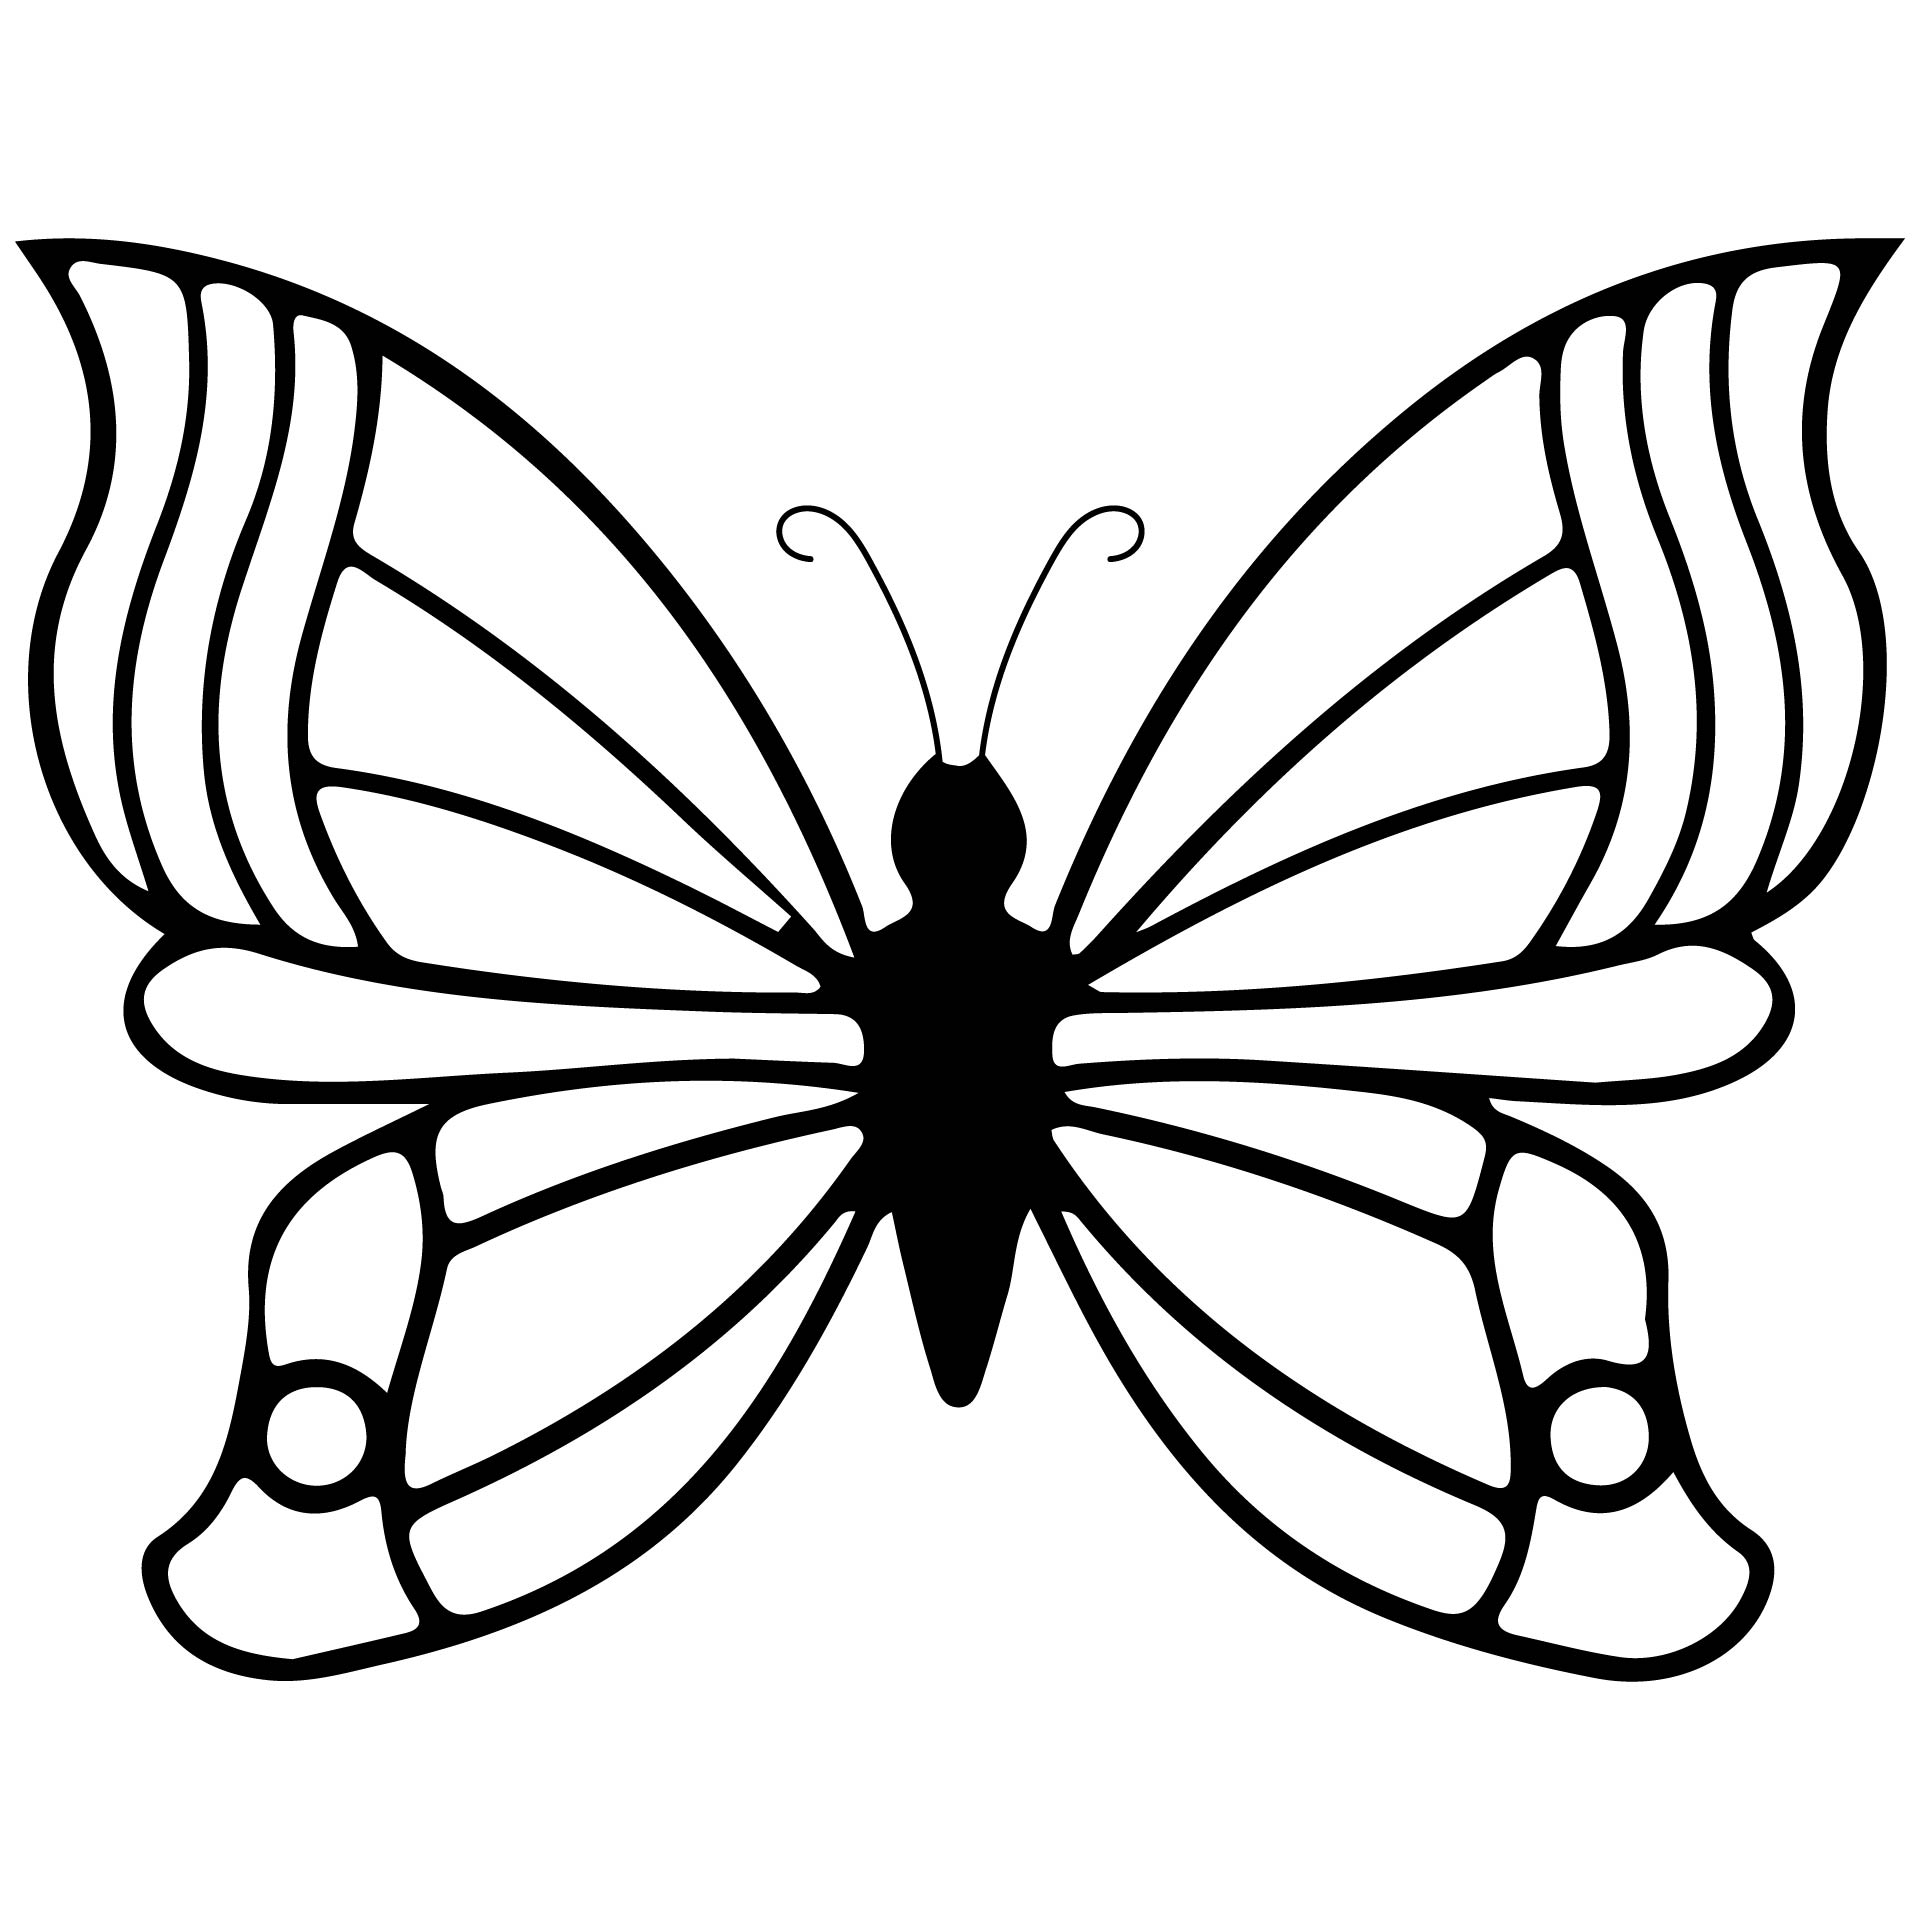 butterfly coloring template free printable butterfly coloring pages for kids butterfly coloring template